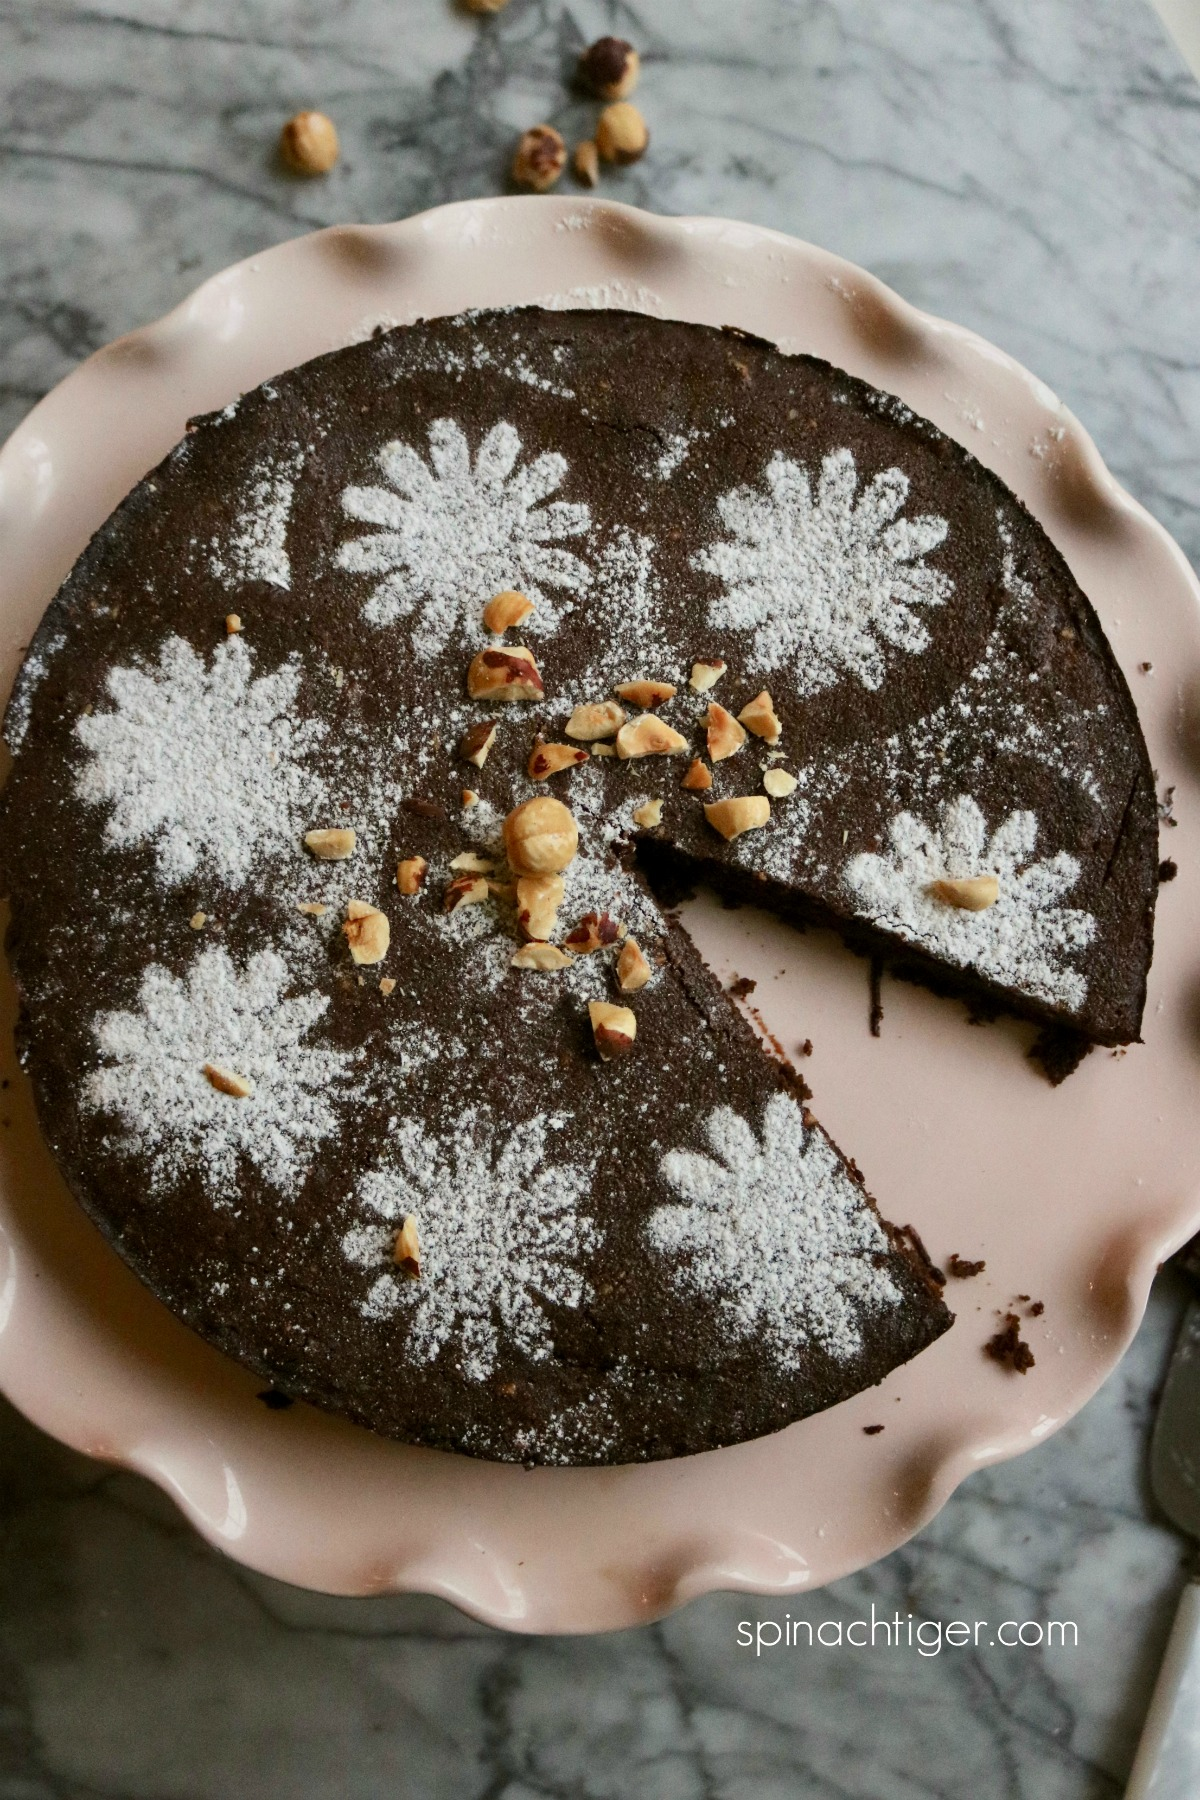 Italian Grain Free Chocolate Hazelnut Cake from Spinach Tiger